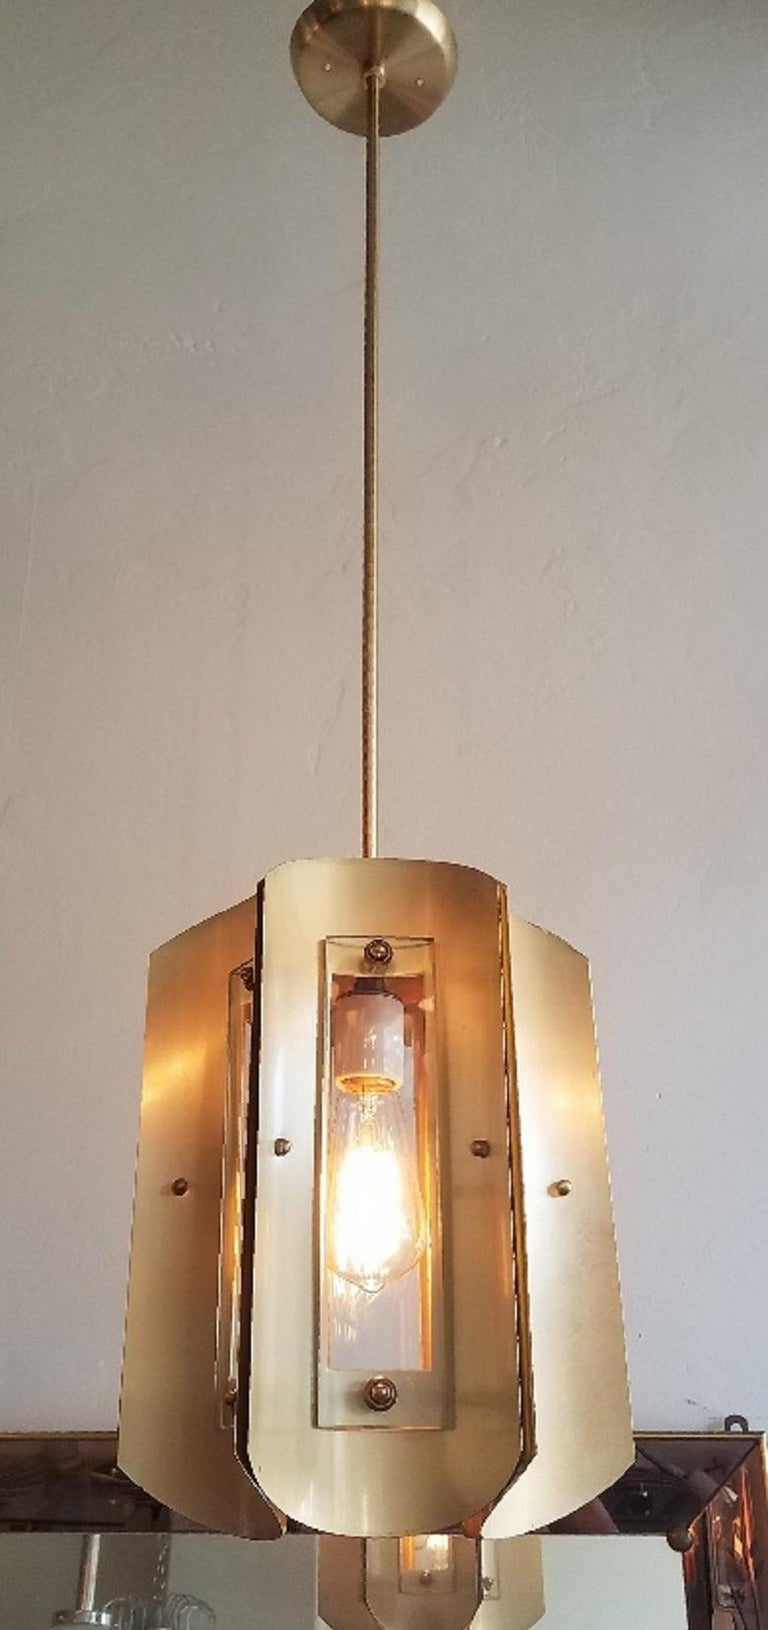 Mid-20th Century Pair of Italian Chandeliers in Style of Max Ingrand For Sale